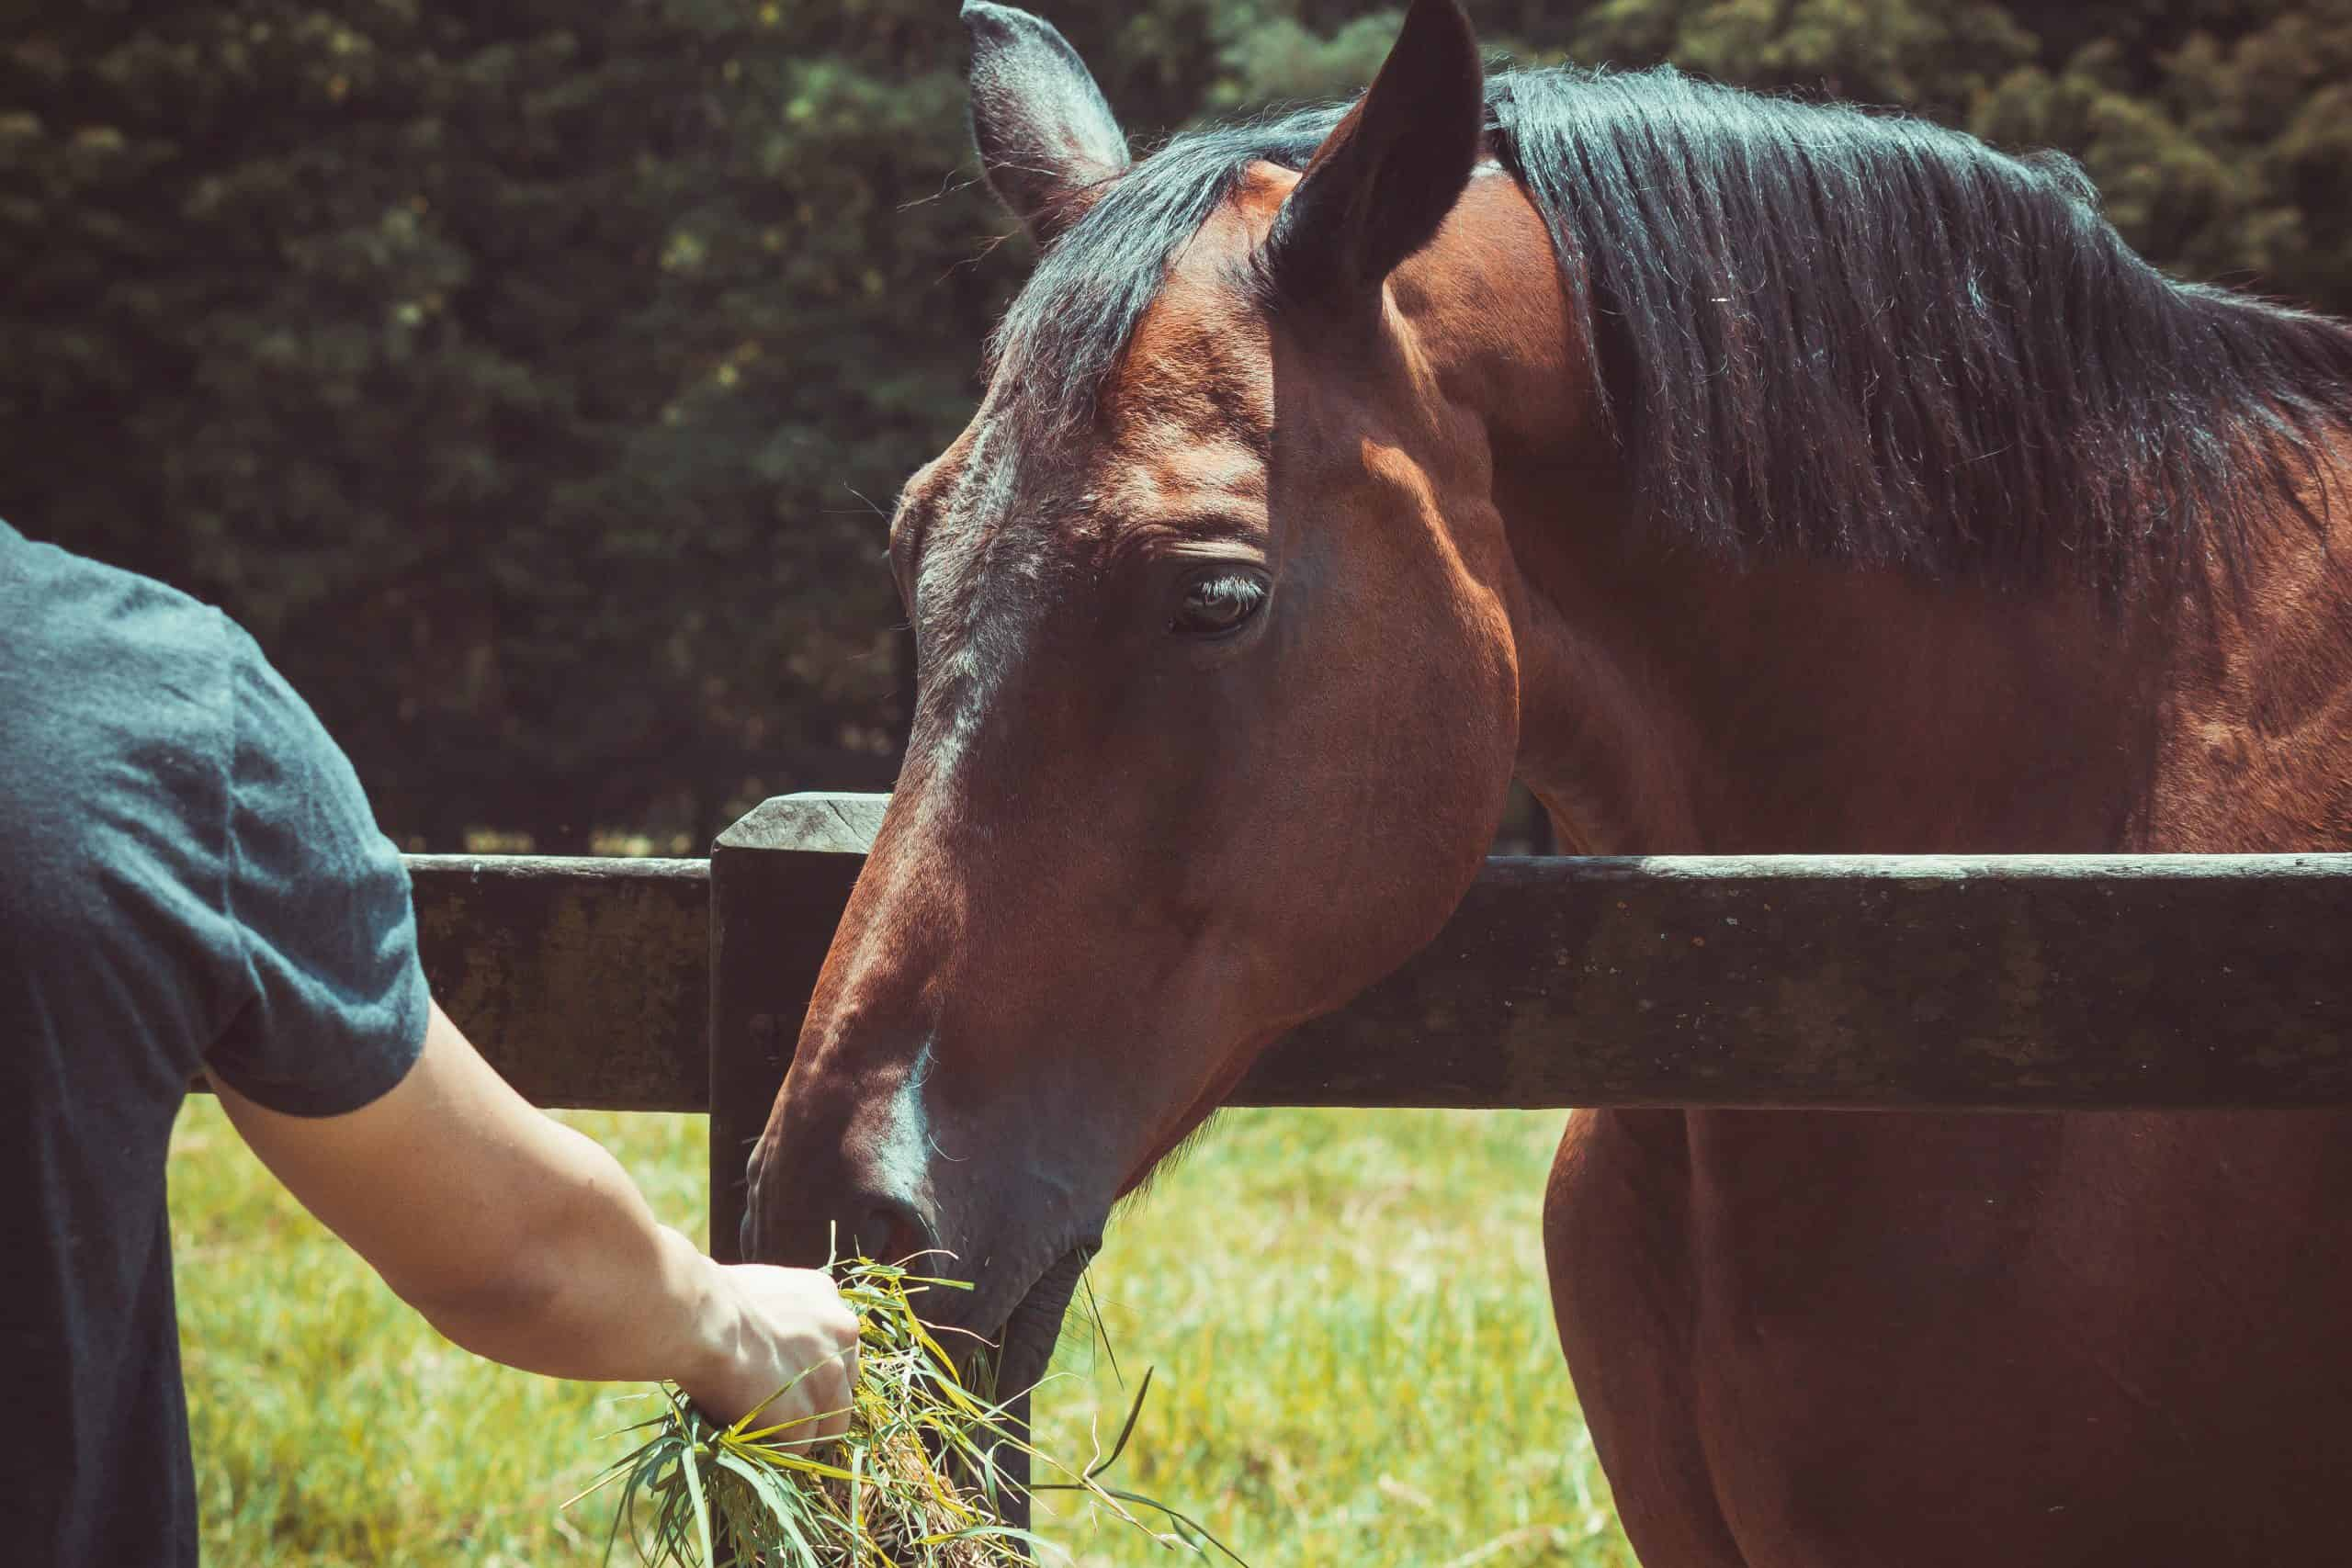 horse colic prevention tips